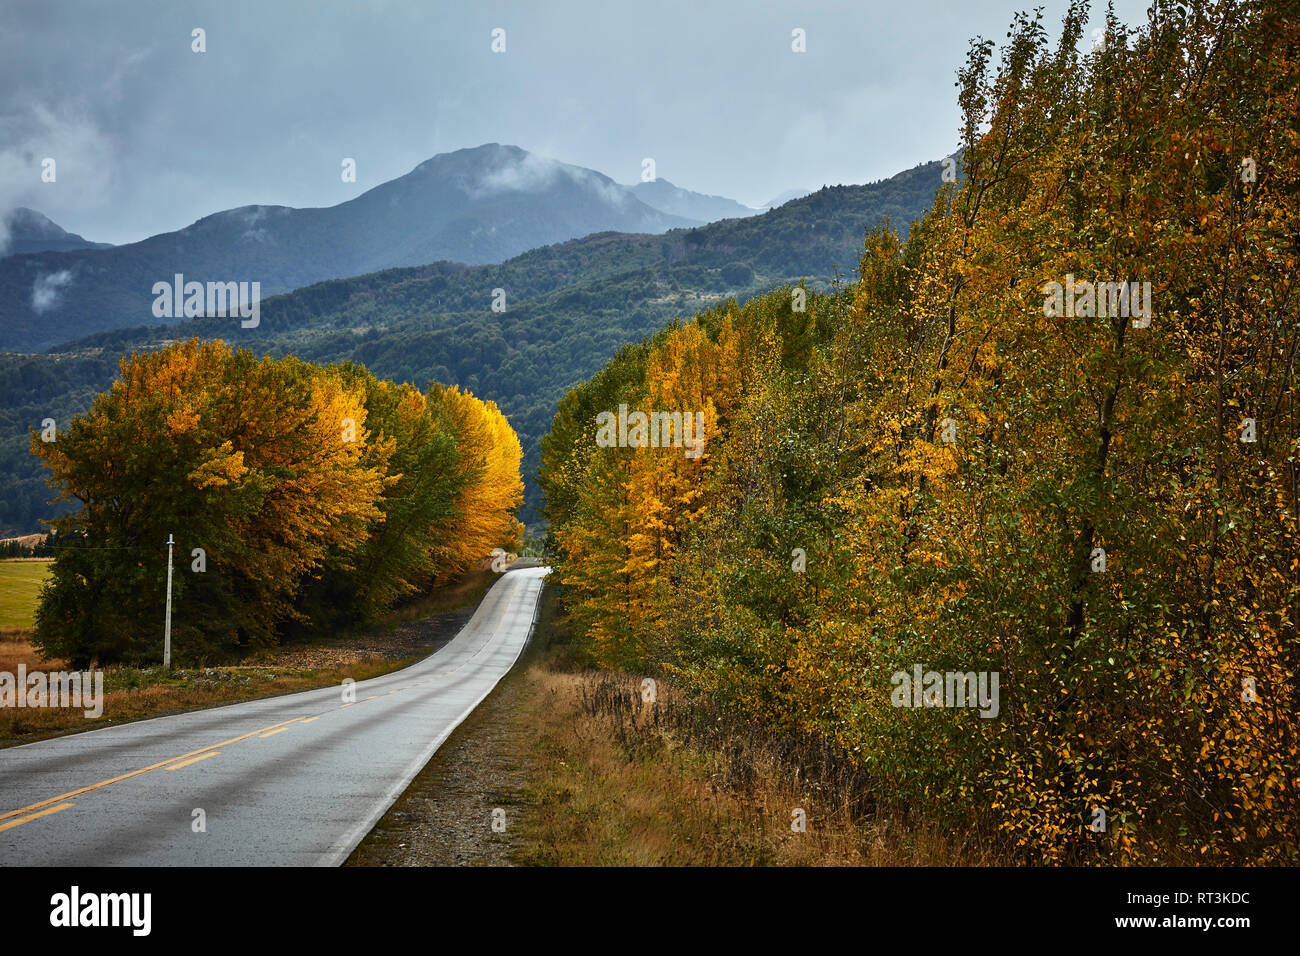 Chile, Puerto Aysen, country road in autumn - Stock Image